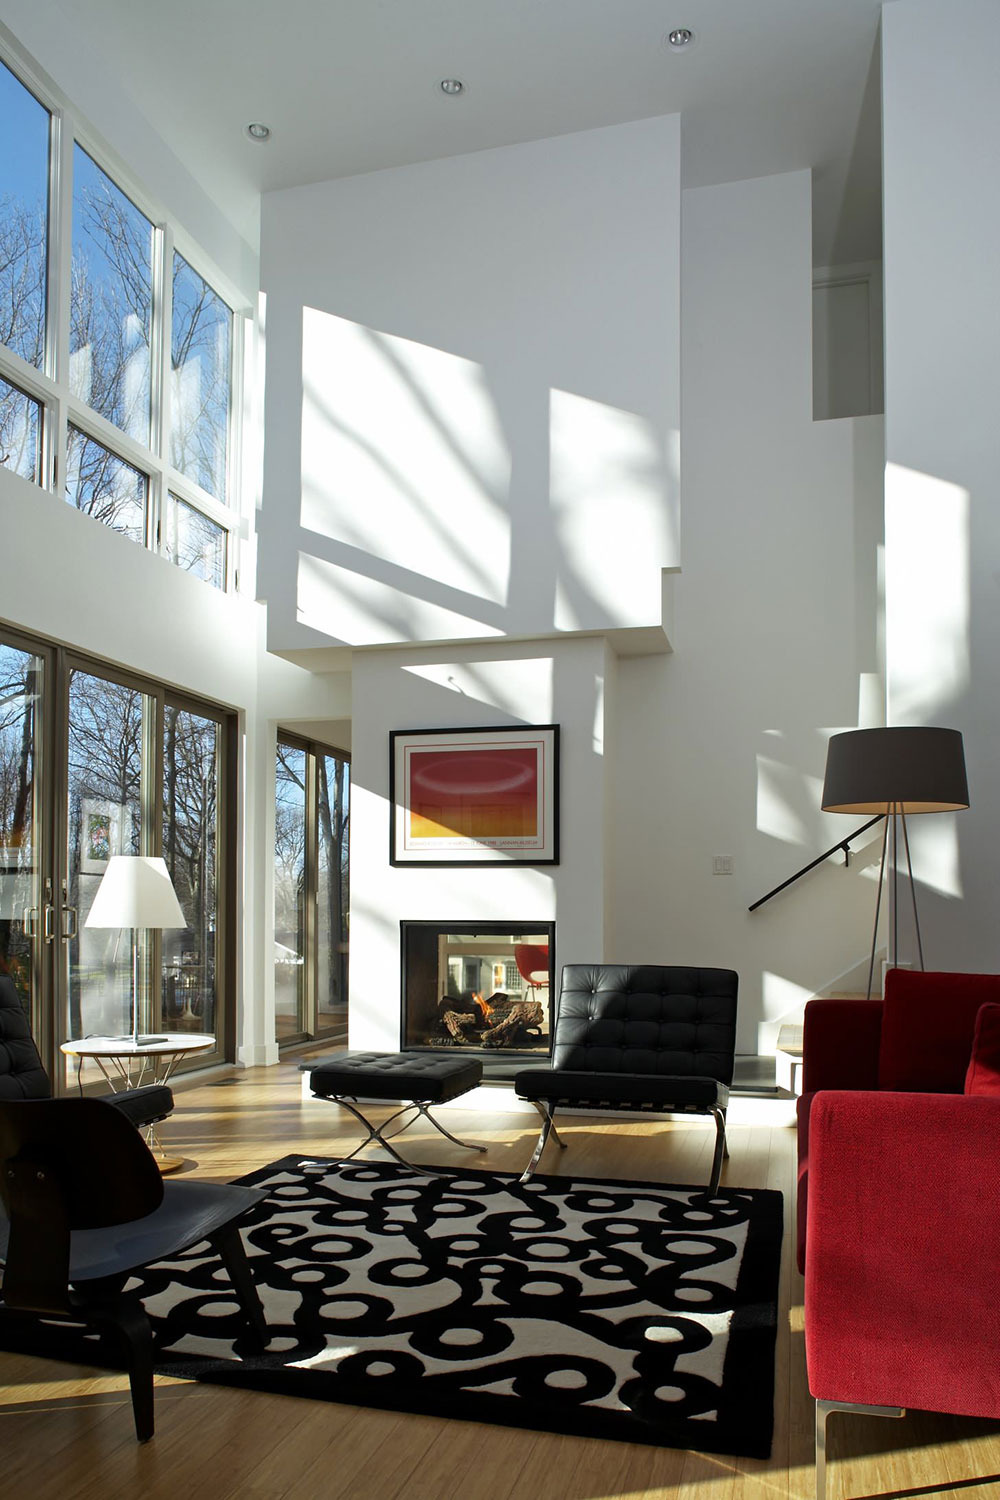 Decorating A Room With High Ceiling7